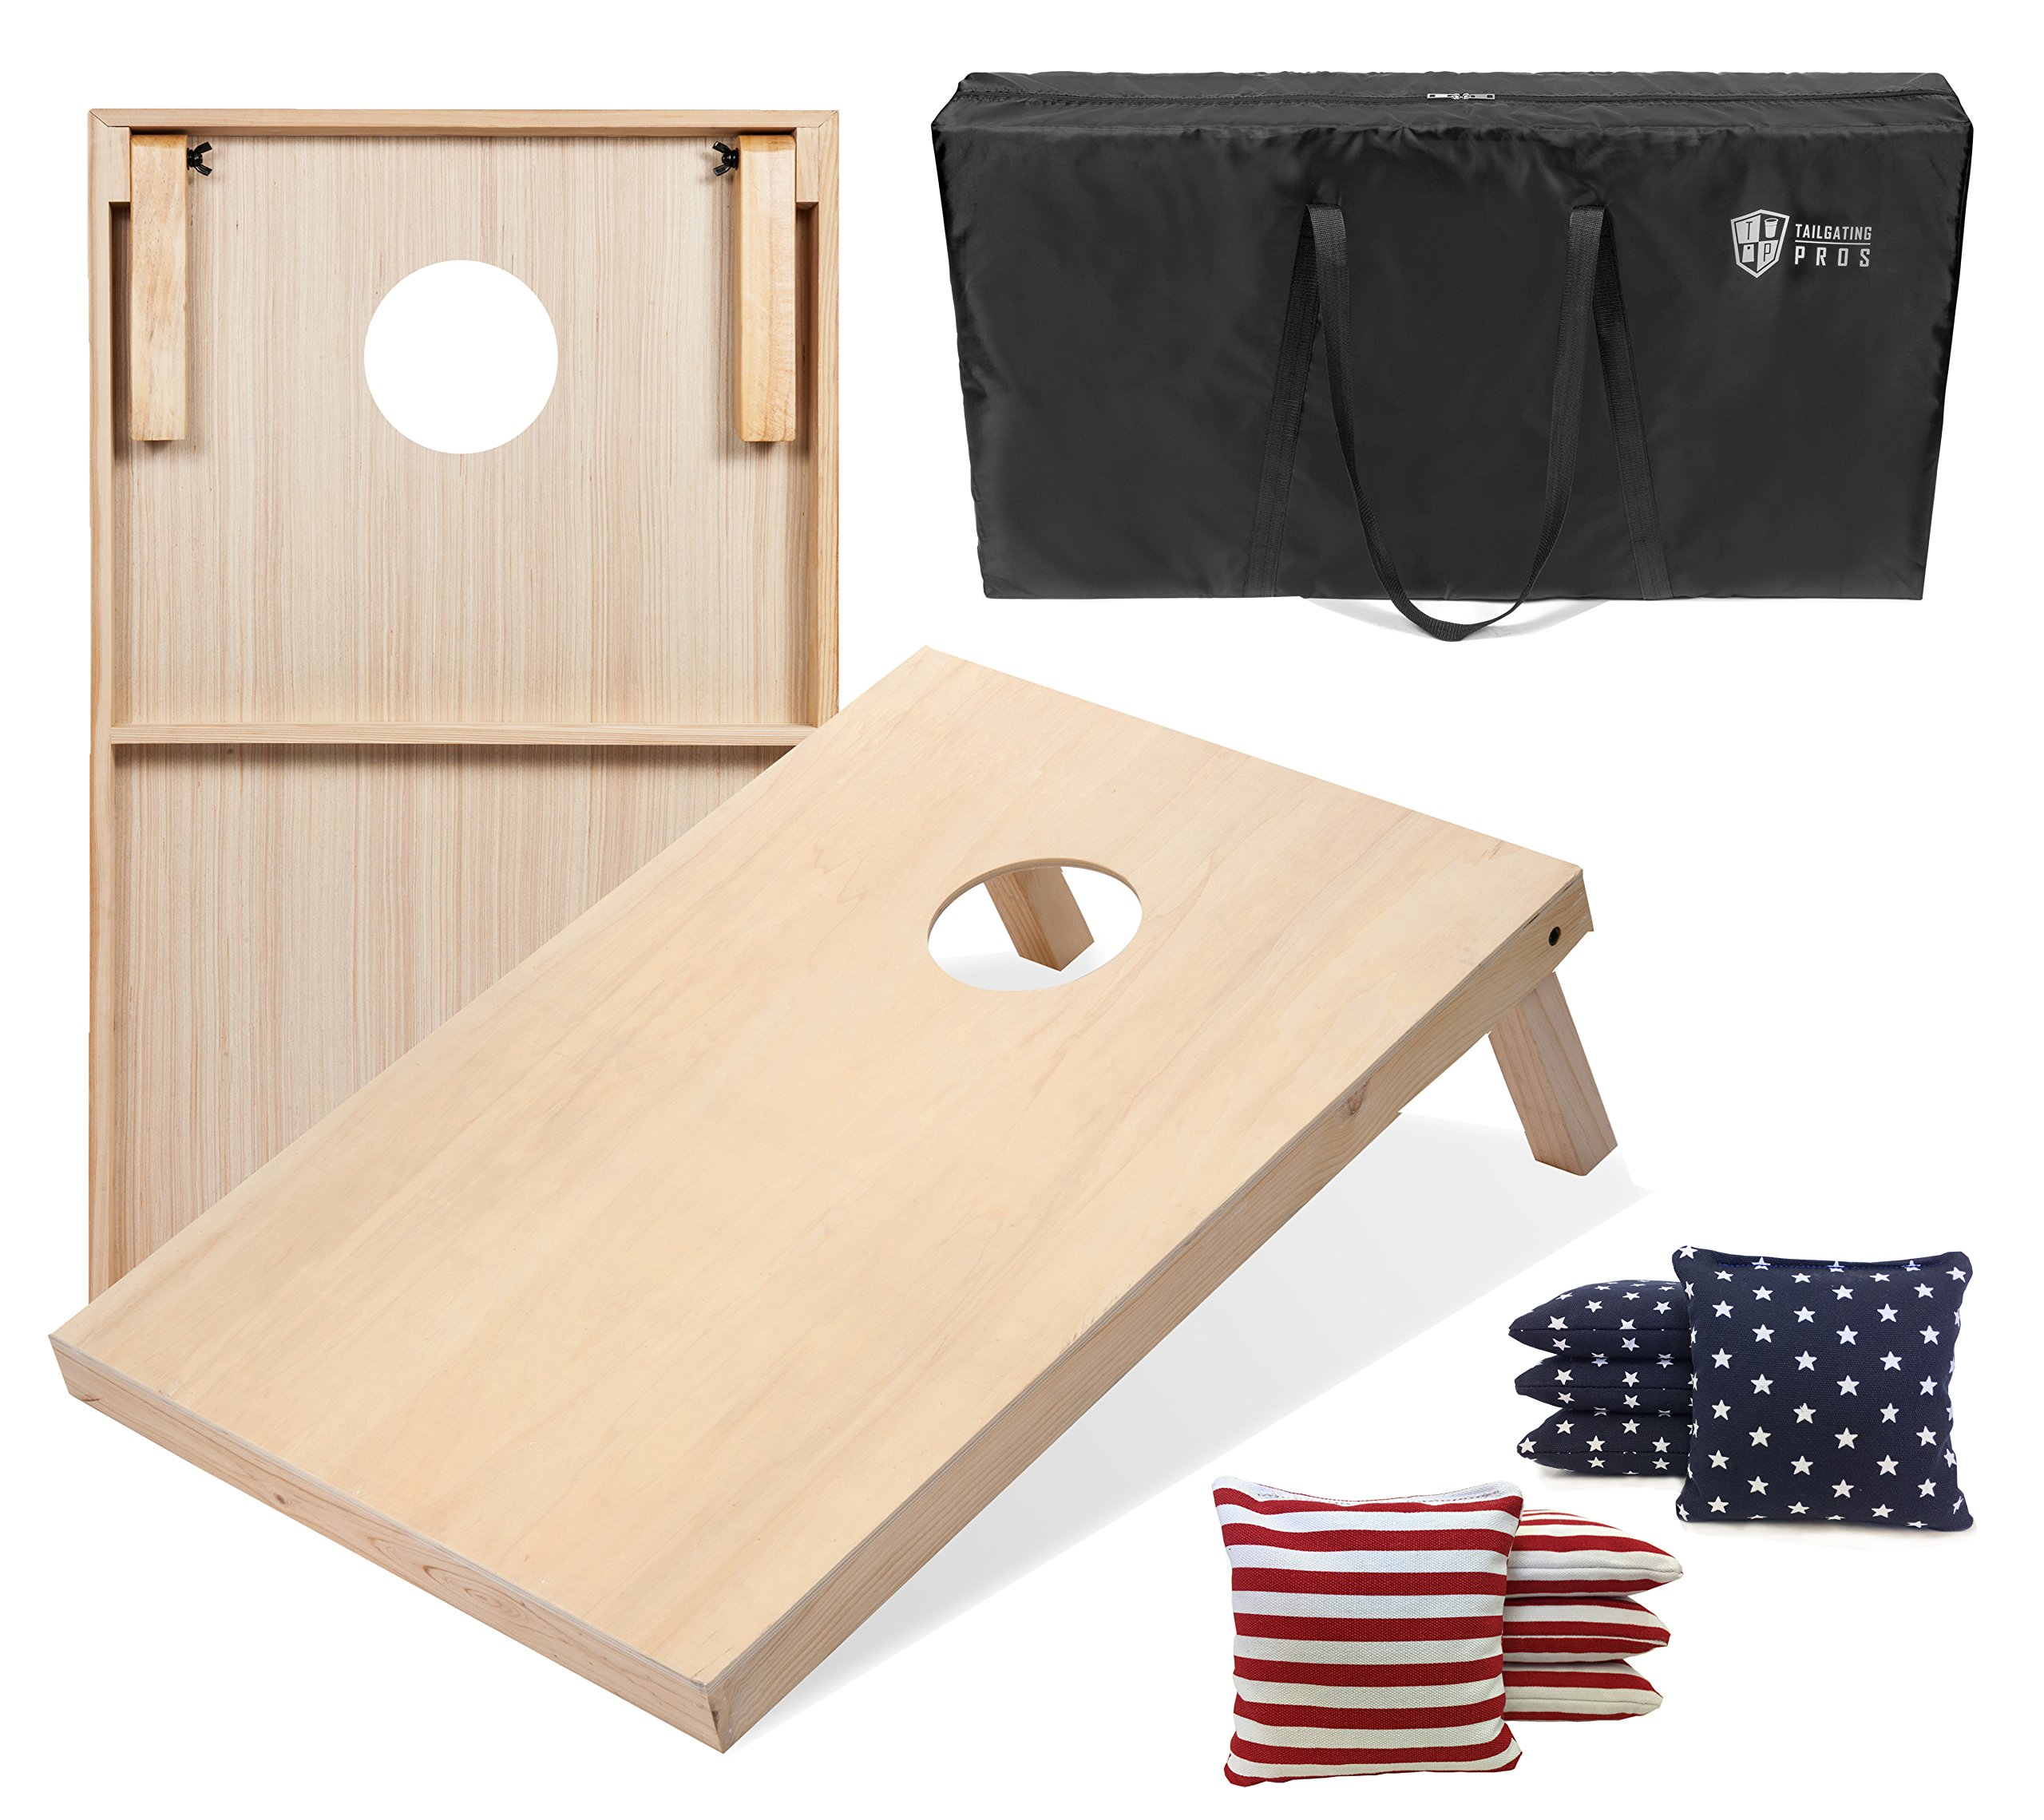 Tailgating Pros 4'x2' Cornhole Boards w/Carrying Case & Set of 8 Cornhole Bags (You Pick Color) 25 Bag Colors! (Stars/Stripes, 3'x2' Boards) by Tailgating Pros